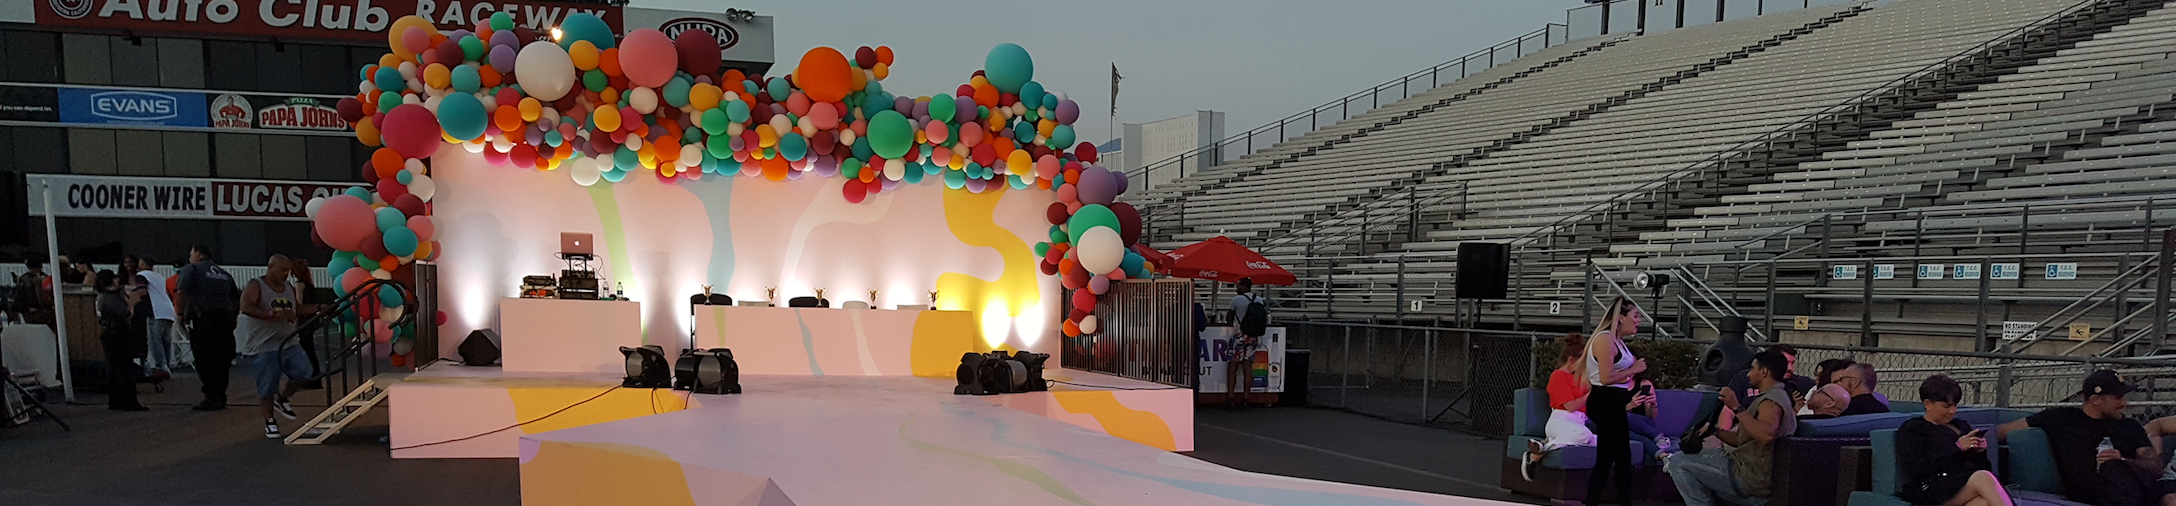 Outdoor LGBTQ Concert Stage with colorful balloons